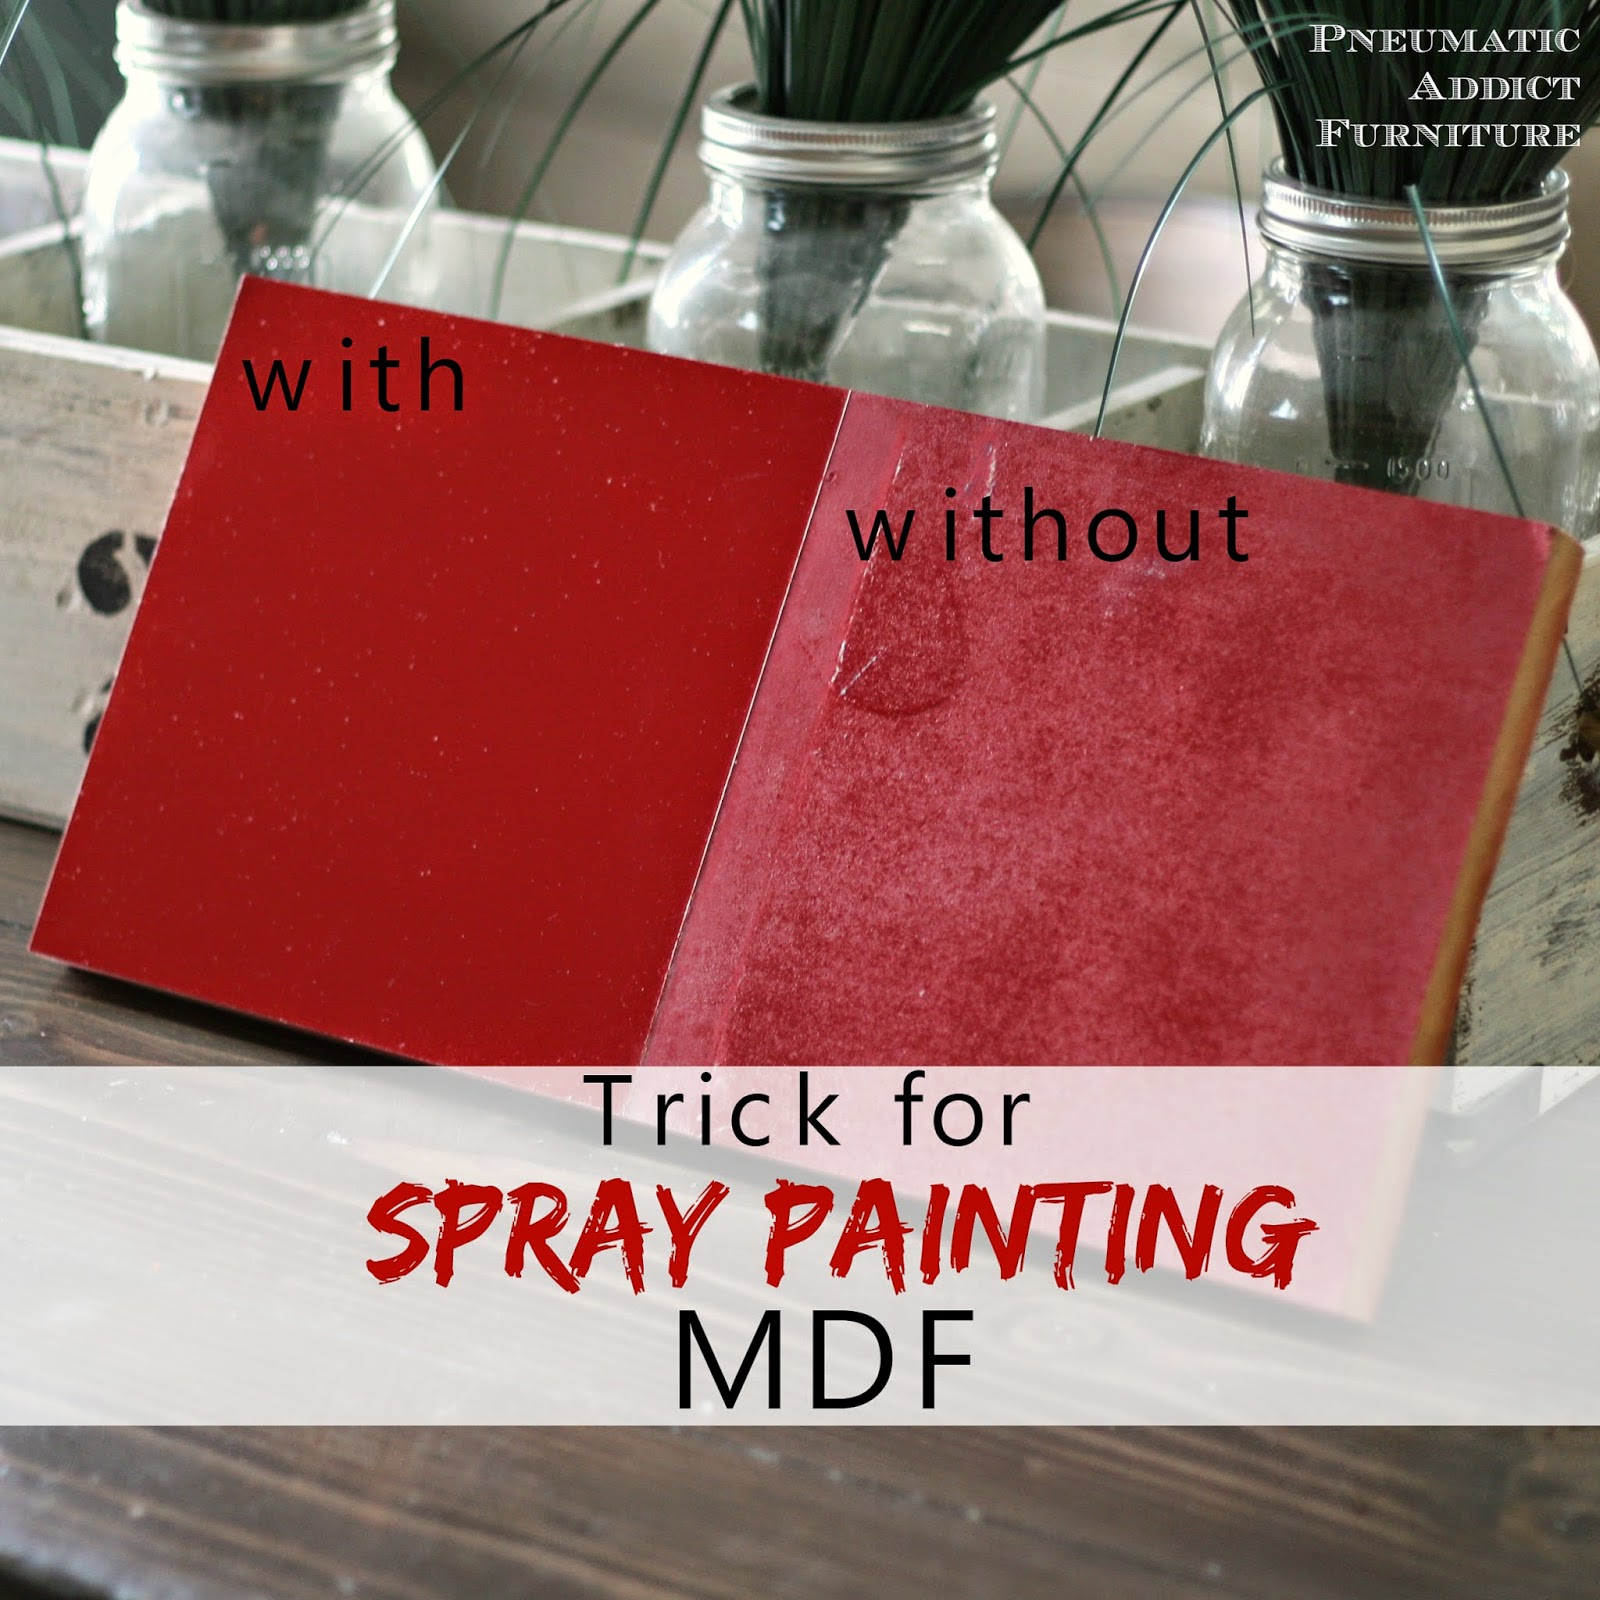 Trick For Spray Painting Mdf Pneumatic Addict